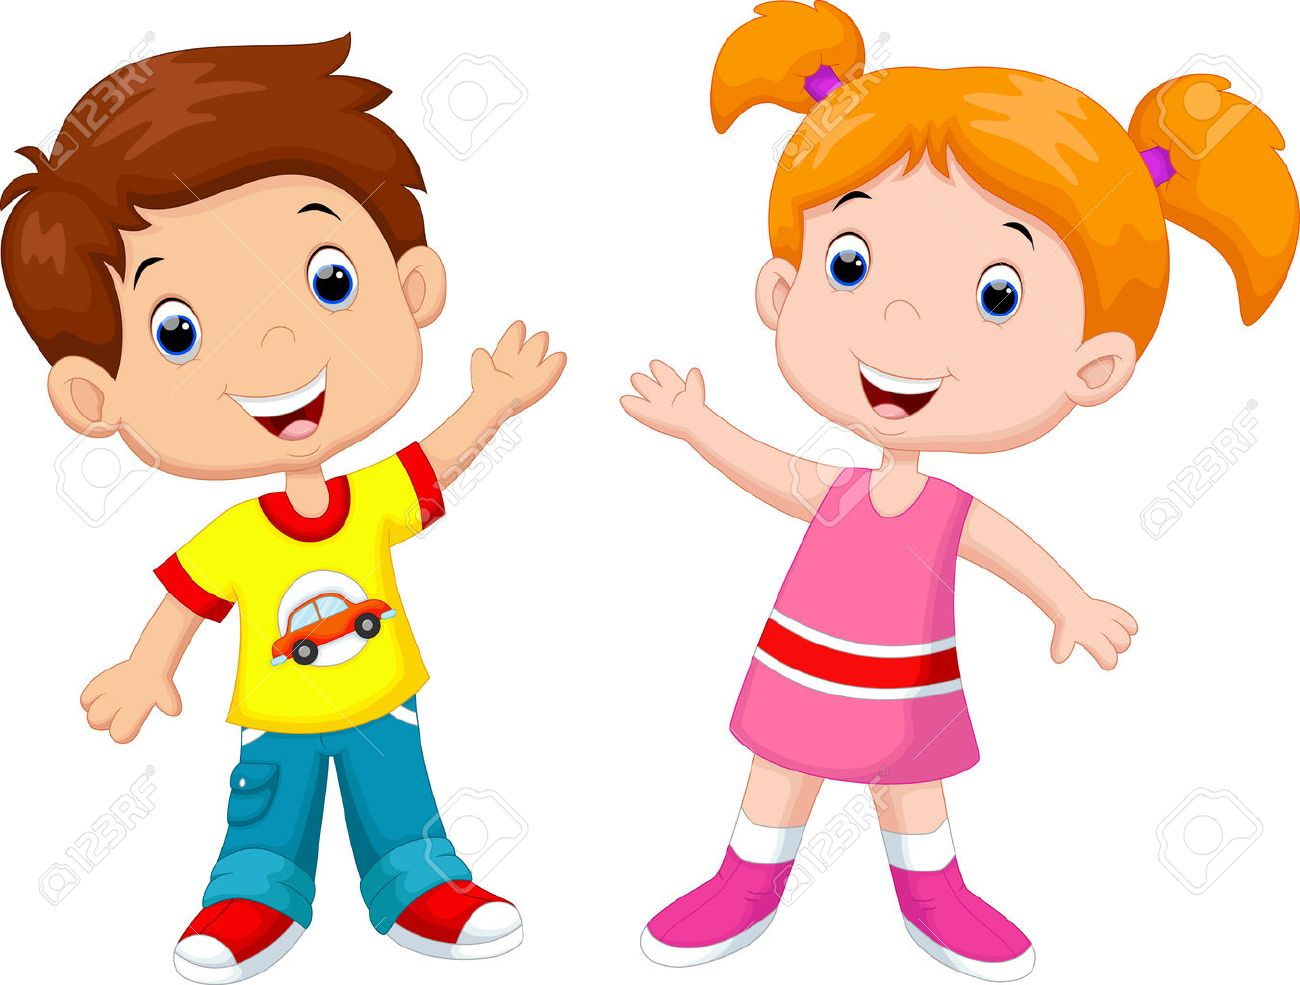 cute cartoon boy and girl royalty free cliparts vectors and stock rh 123rf com cartoon girl and boy pic cartoon girl and boy